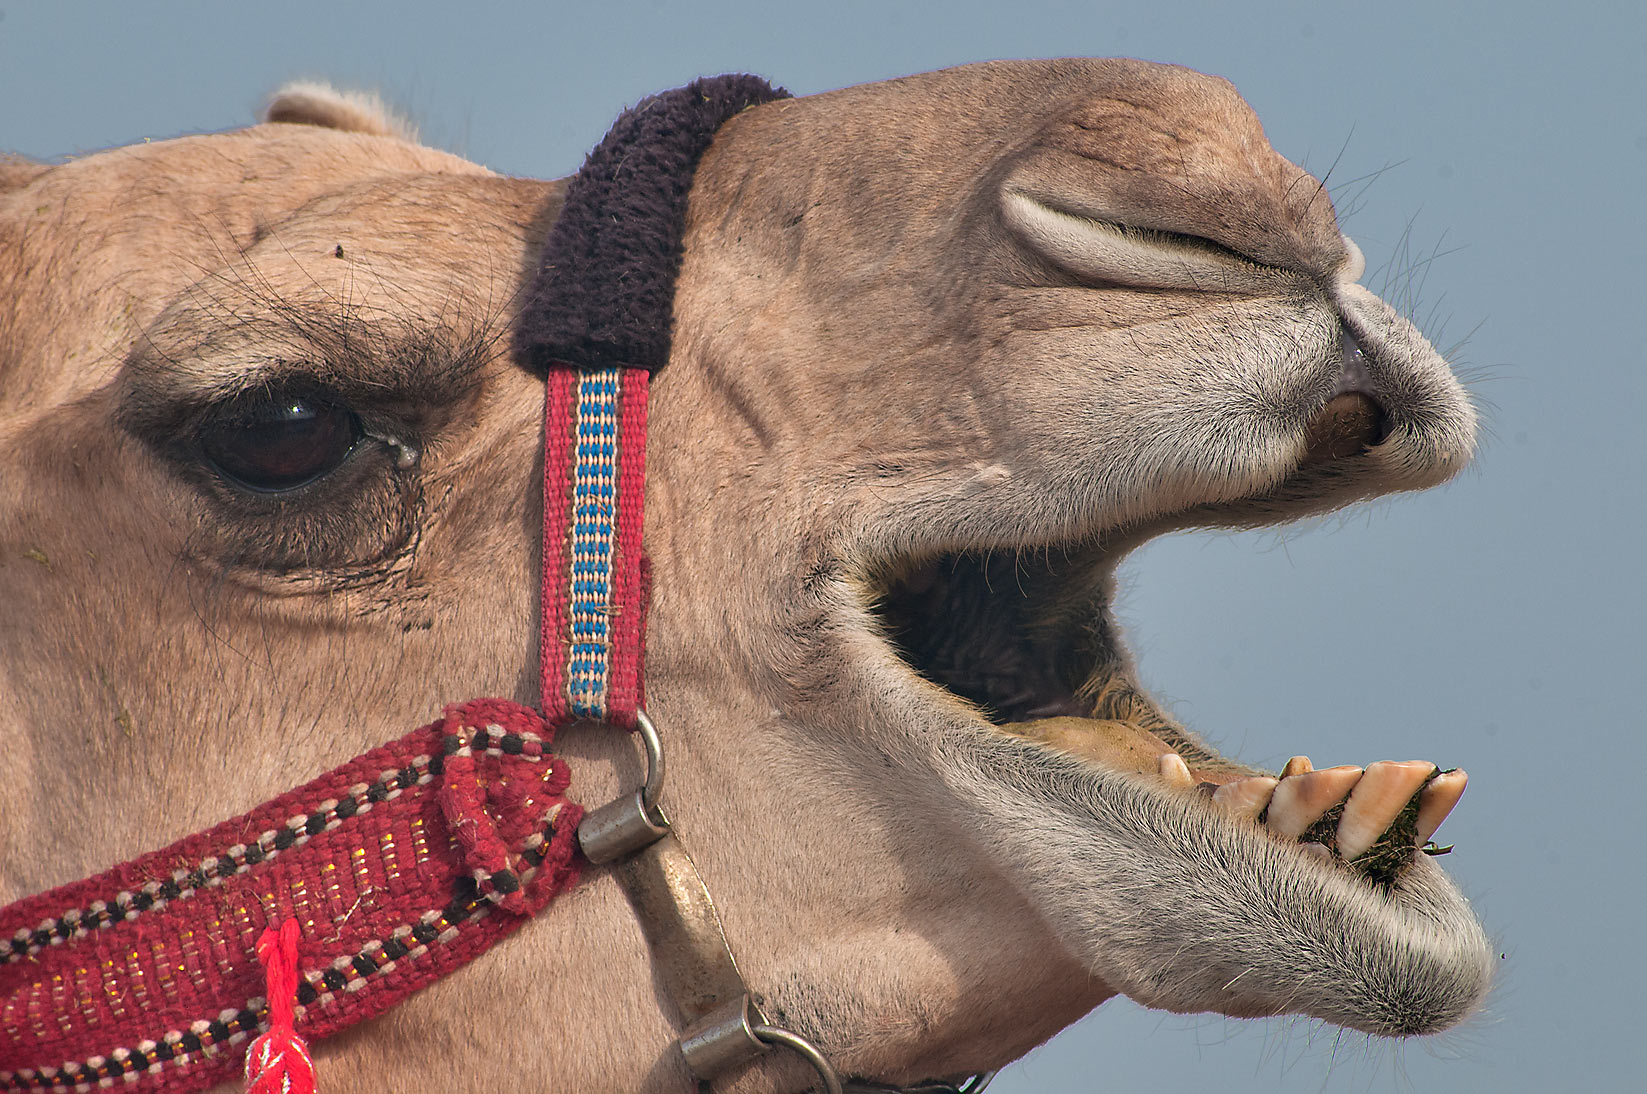 Groaning camel in Camel Market, Wholesale Markets area. Doha, Qatar